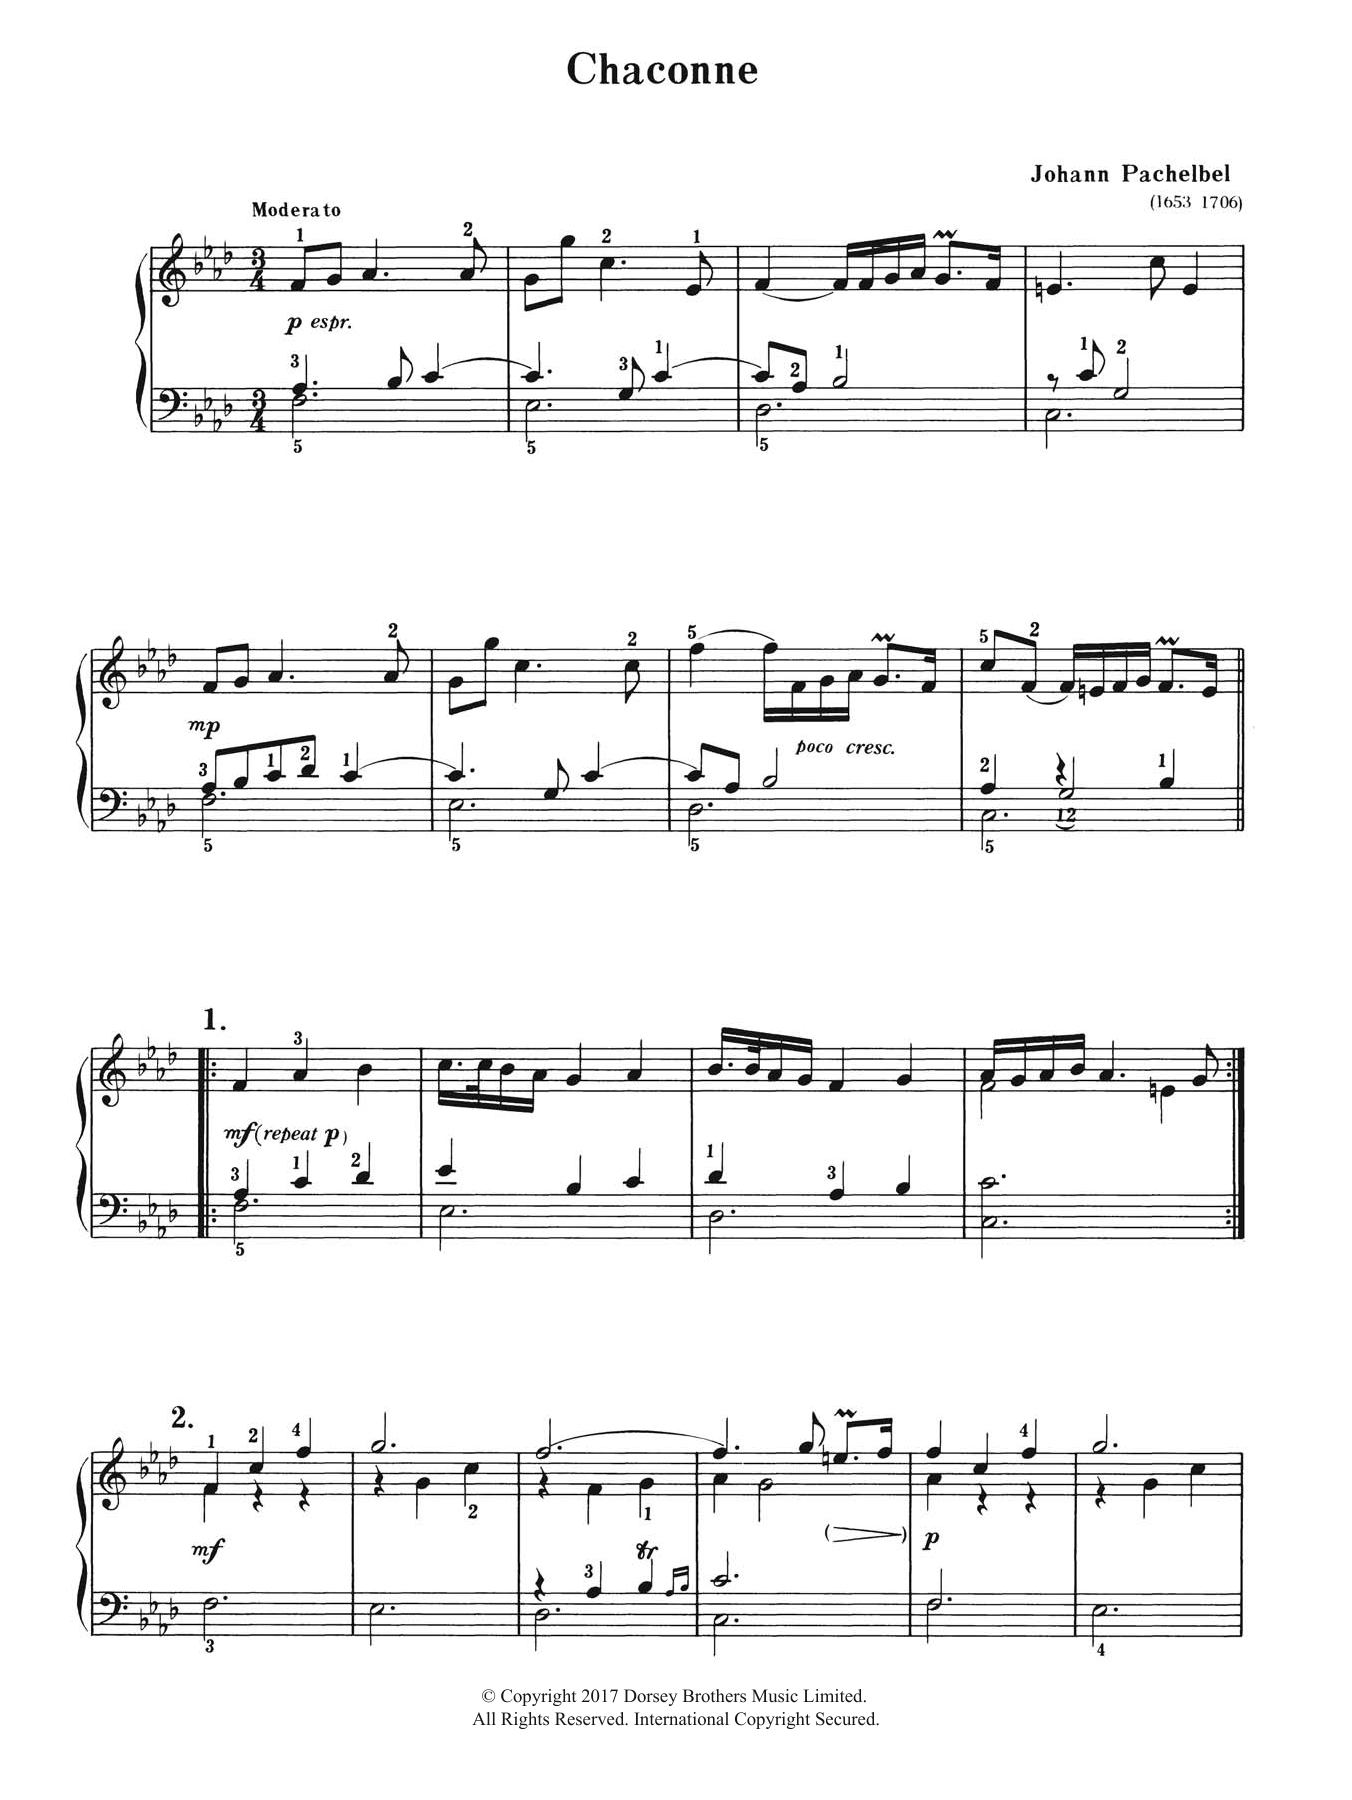 Chaconne Sheet Music